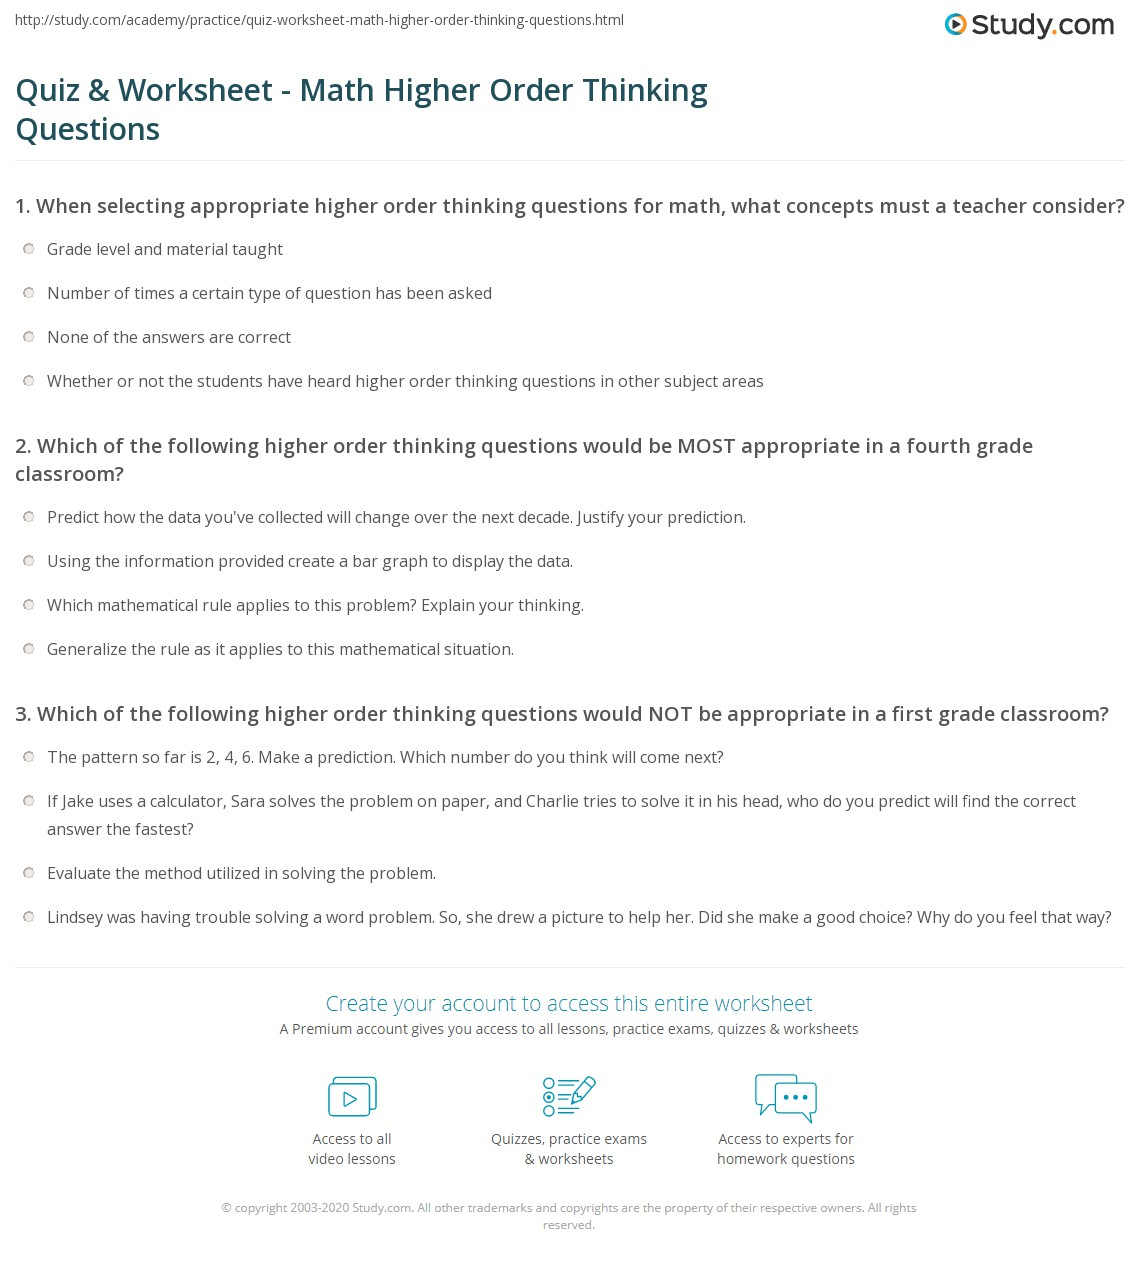 Quiz & Worksheet - Math Higher Order Thinking Questions | Study.com